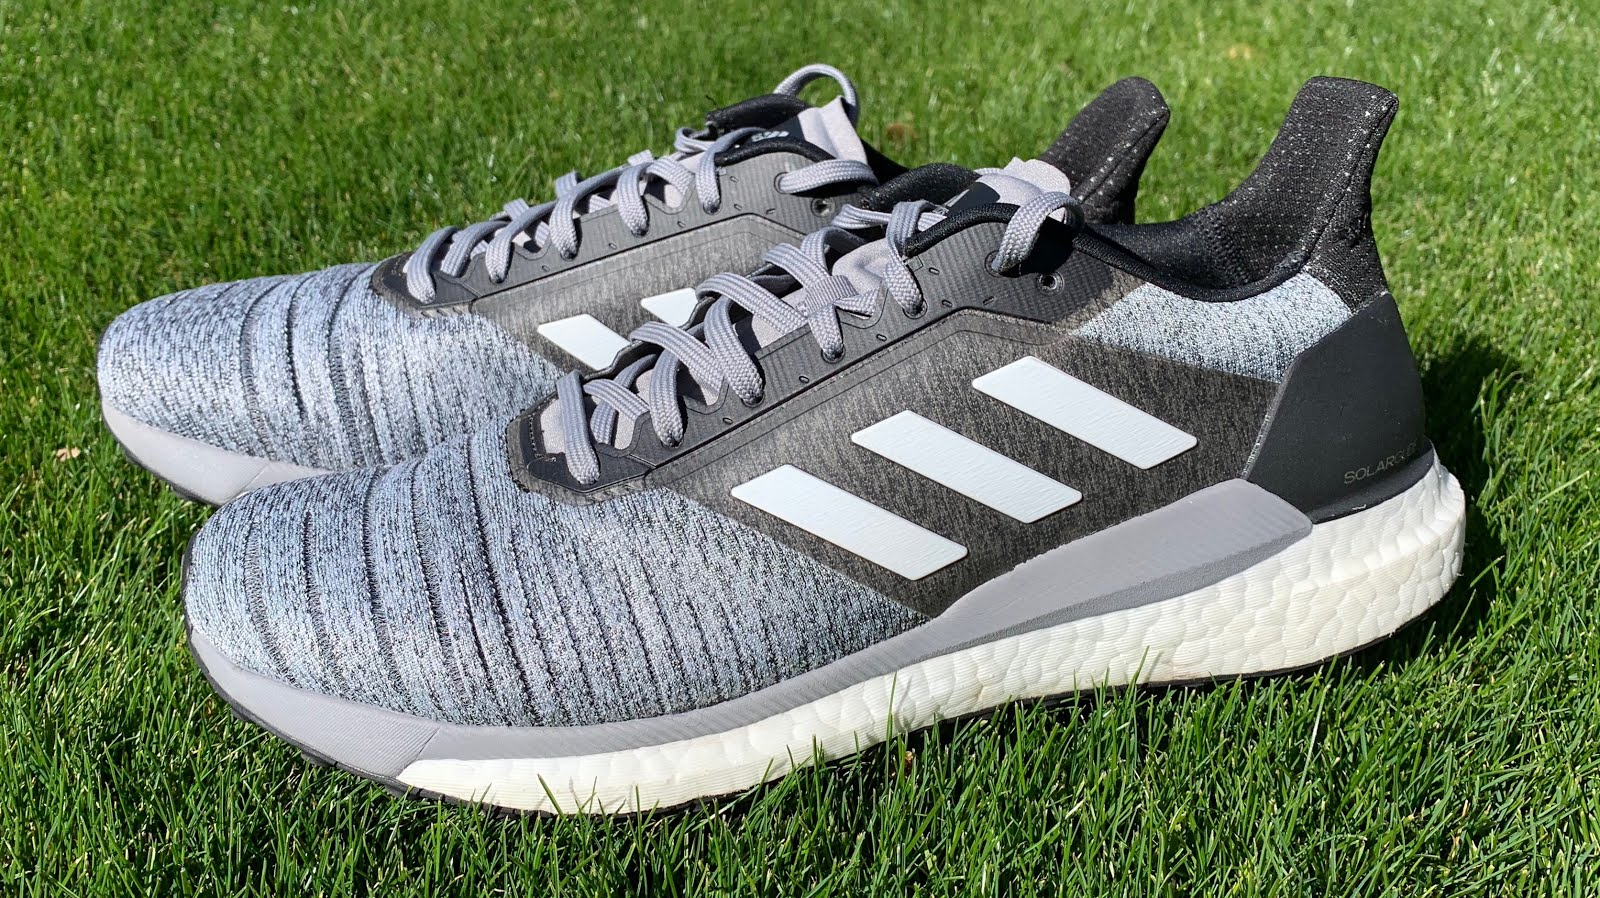 98e31f22a Road Trail Run  adidas Solar Glide Review- Splitting the Differences ...